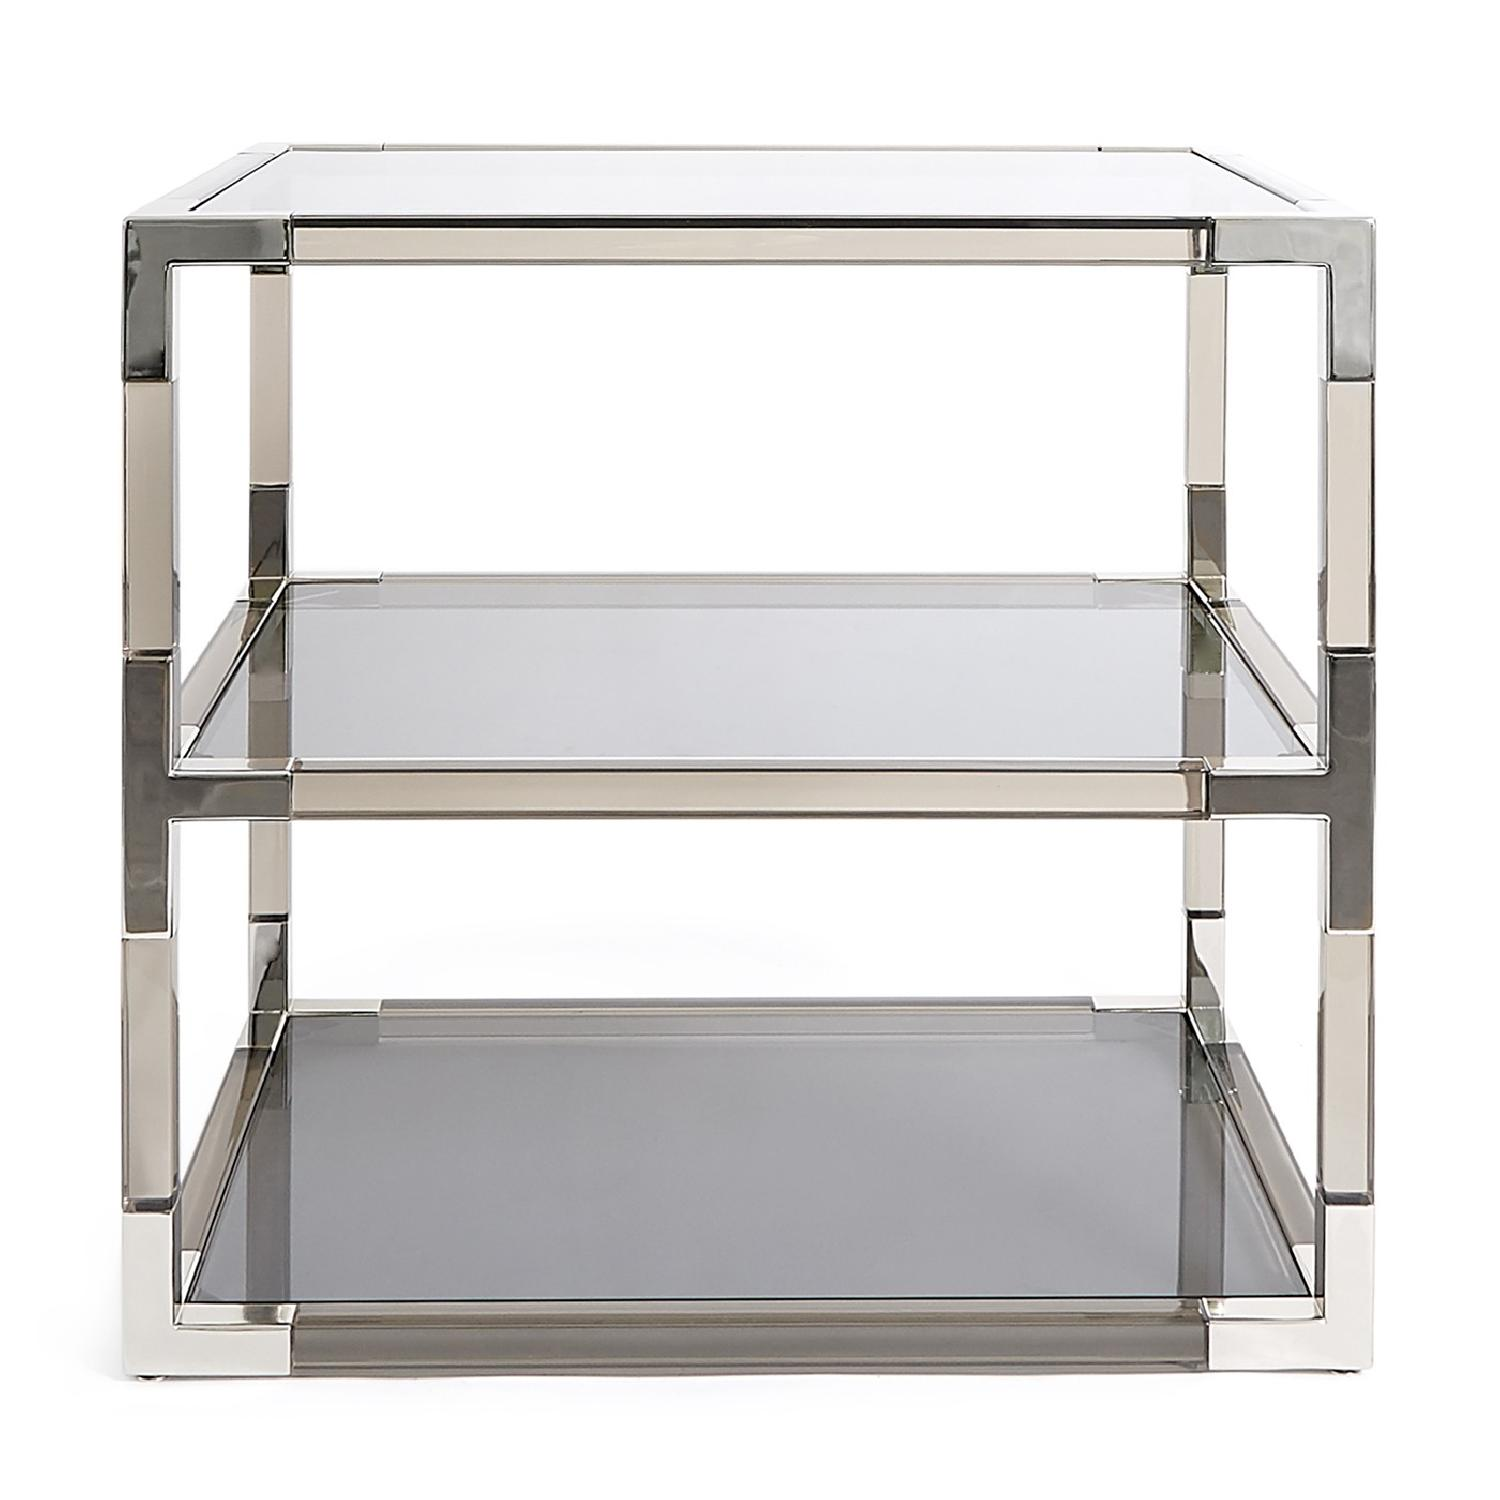 Jonathan Adler Jacques Two-Tier Side Tables - image-8